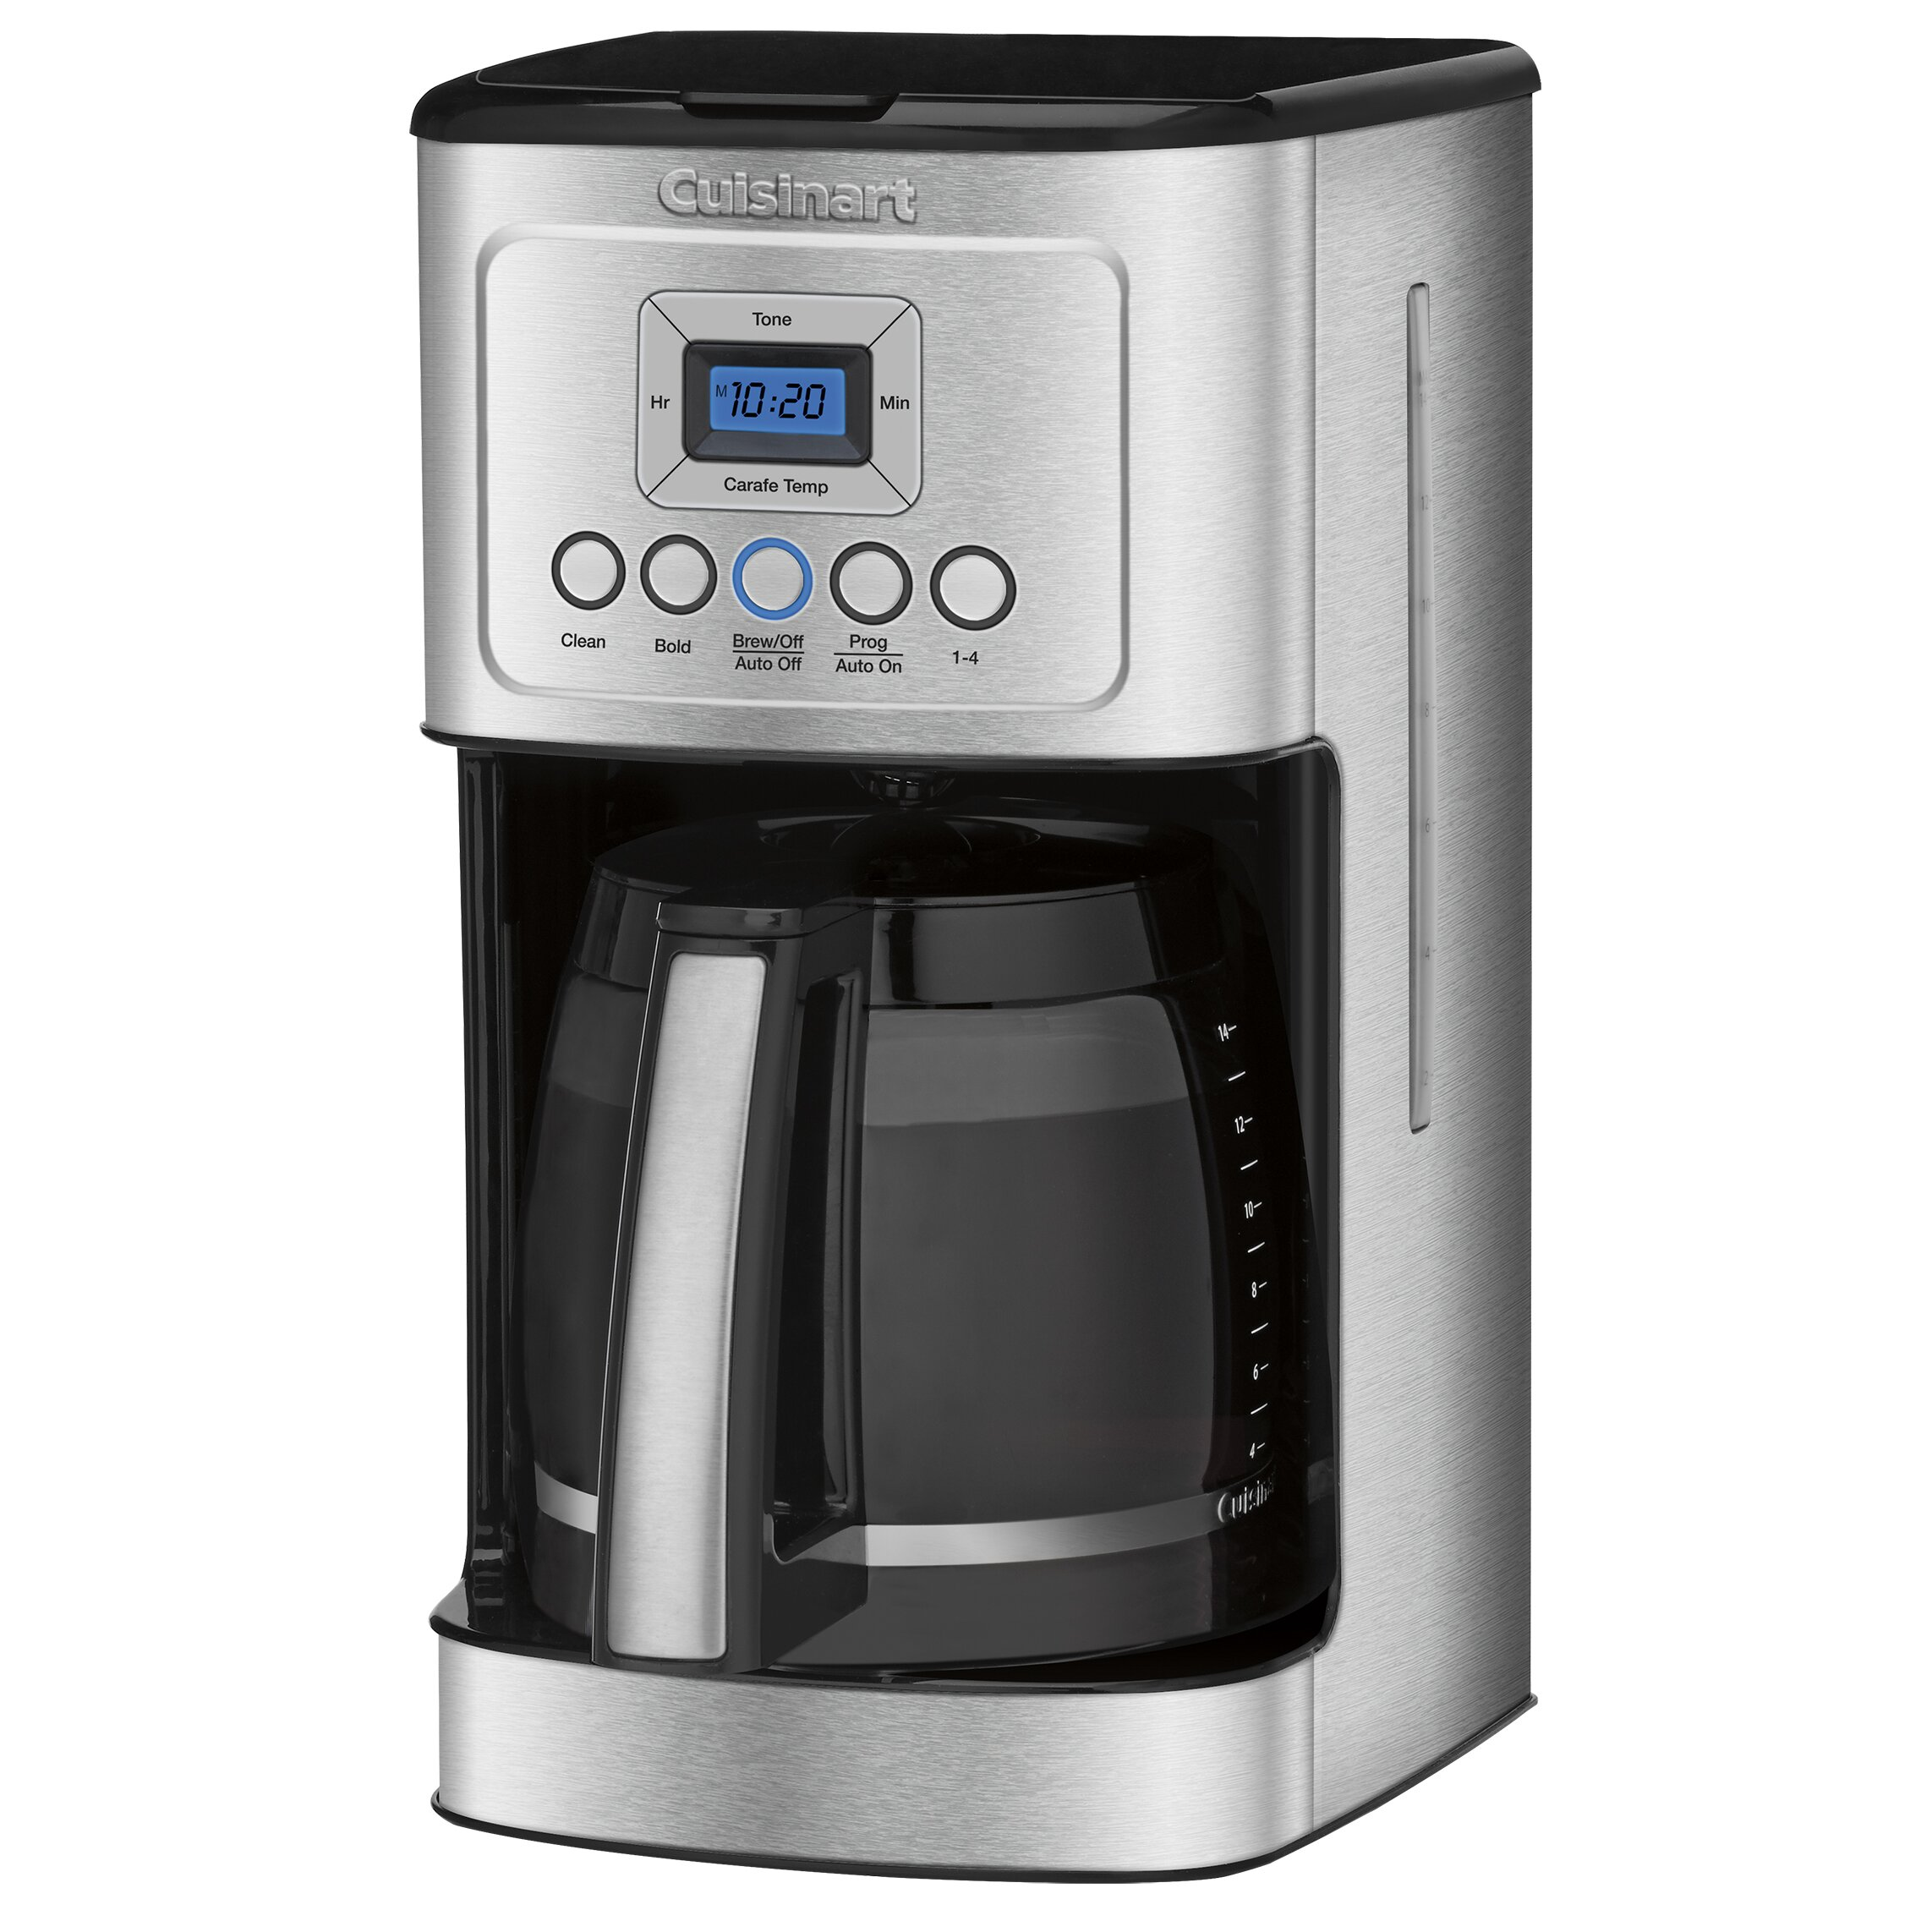 One Cup Coffee Maker Programmable : Cuisinart 14 Cup Programmable Coffee Maker & Reviews Wayfair